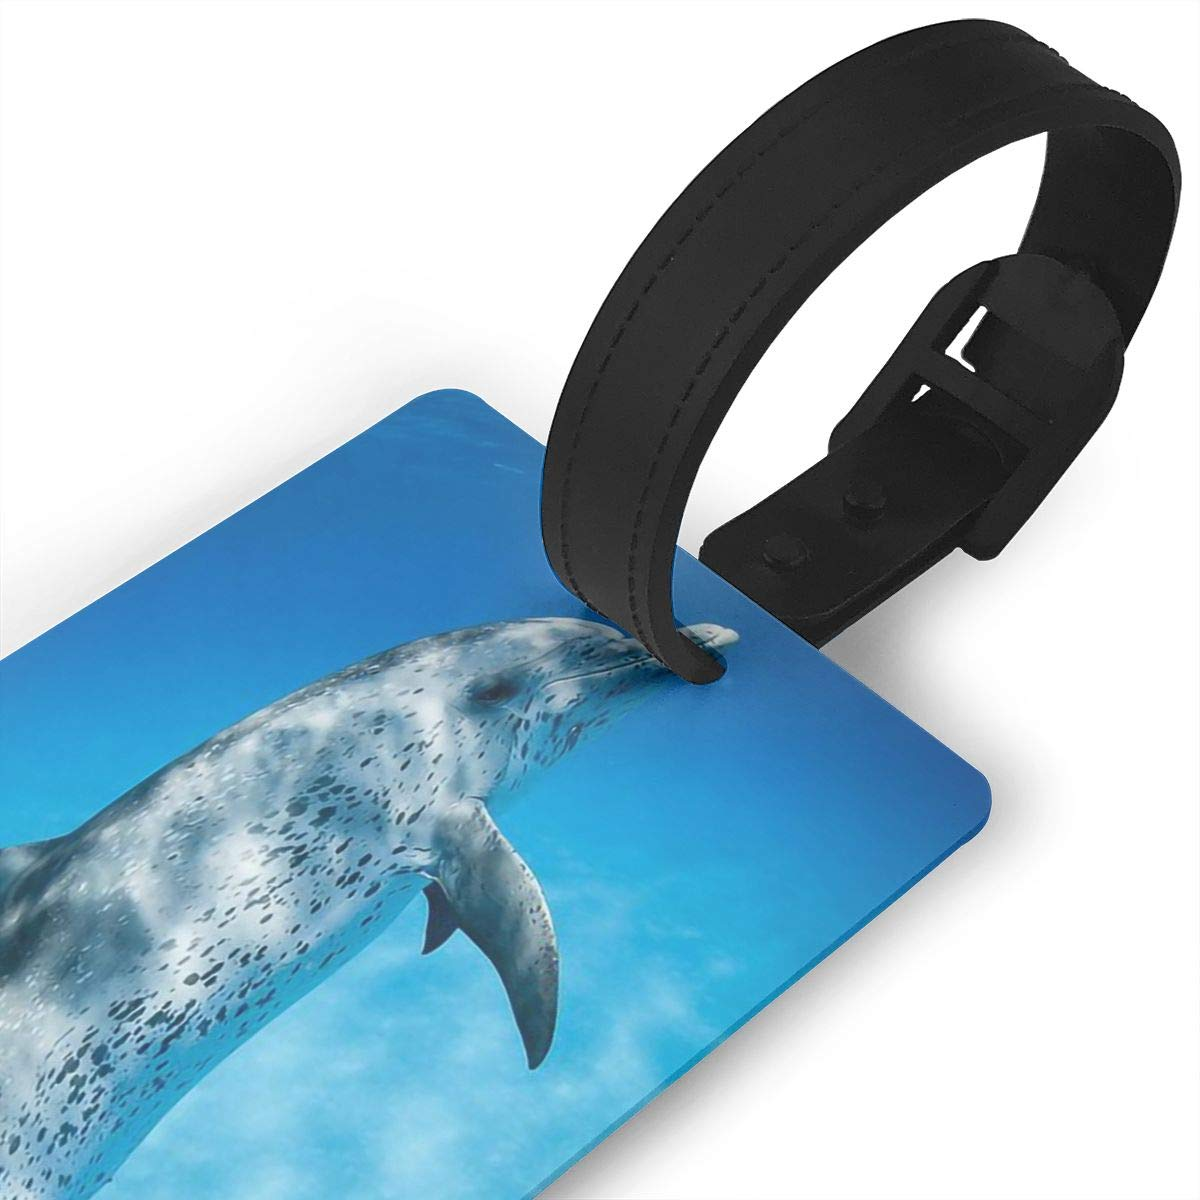 Dolphins Ocean Baggage Tag For Travel Tags Accessories 2 Pack Luggage Tags